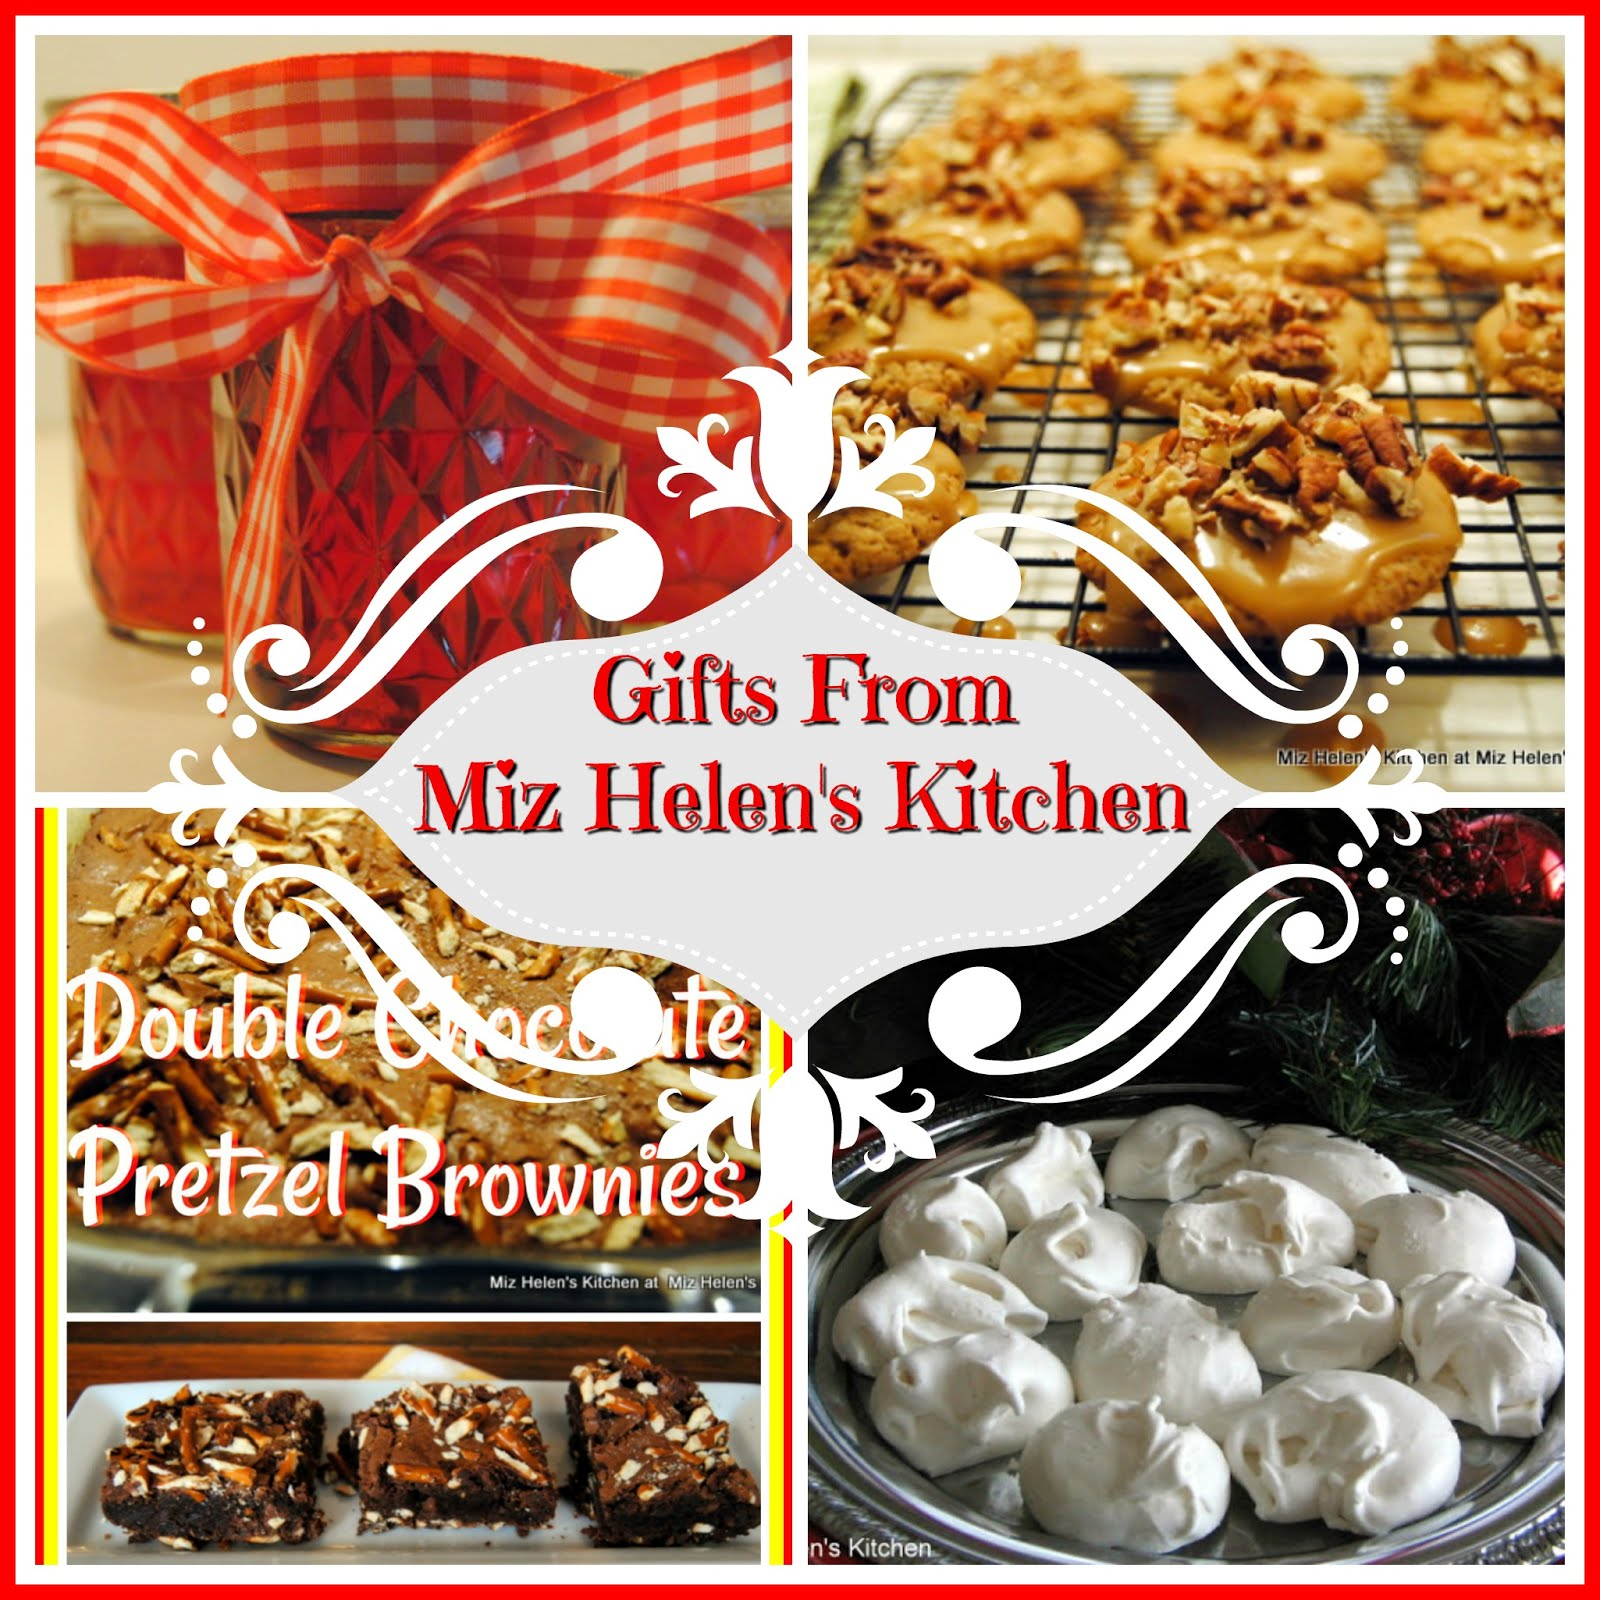 Gifts From Miz Helen's Kitchen